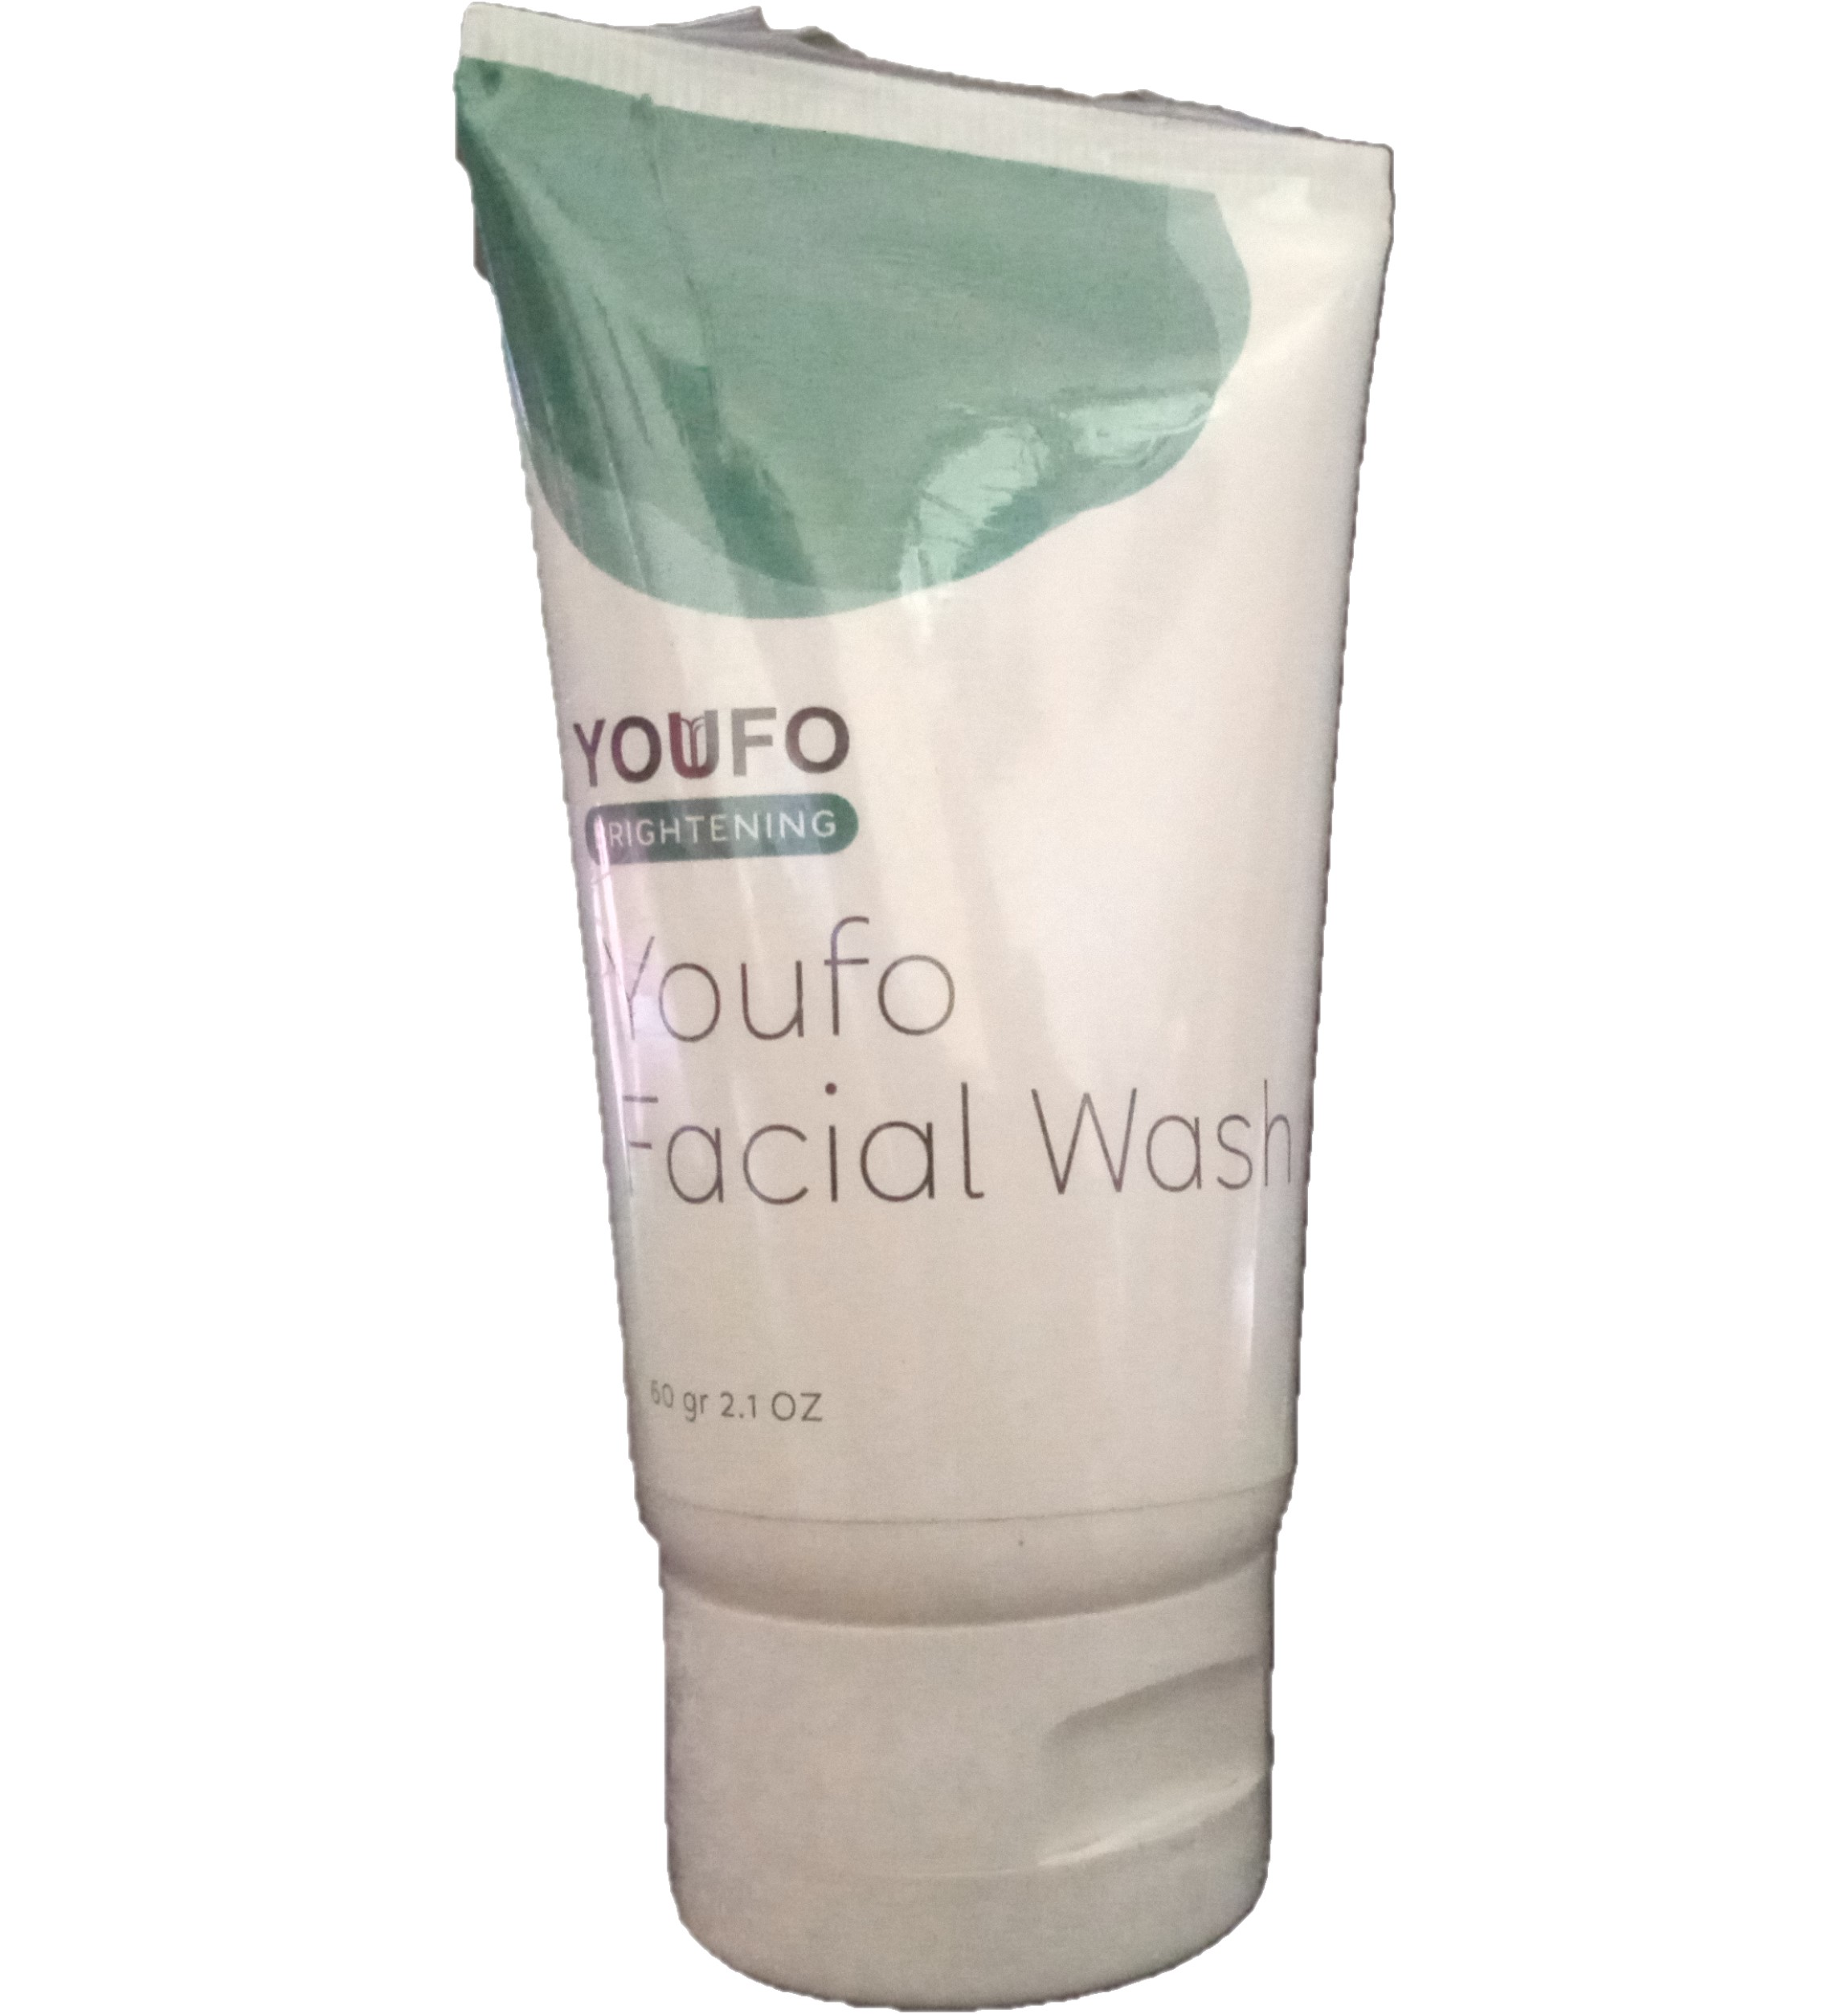 YouFo Brightening Facial Wash